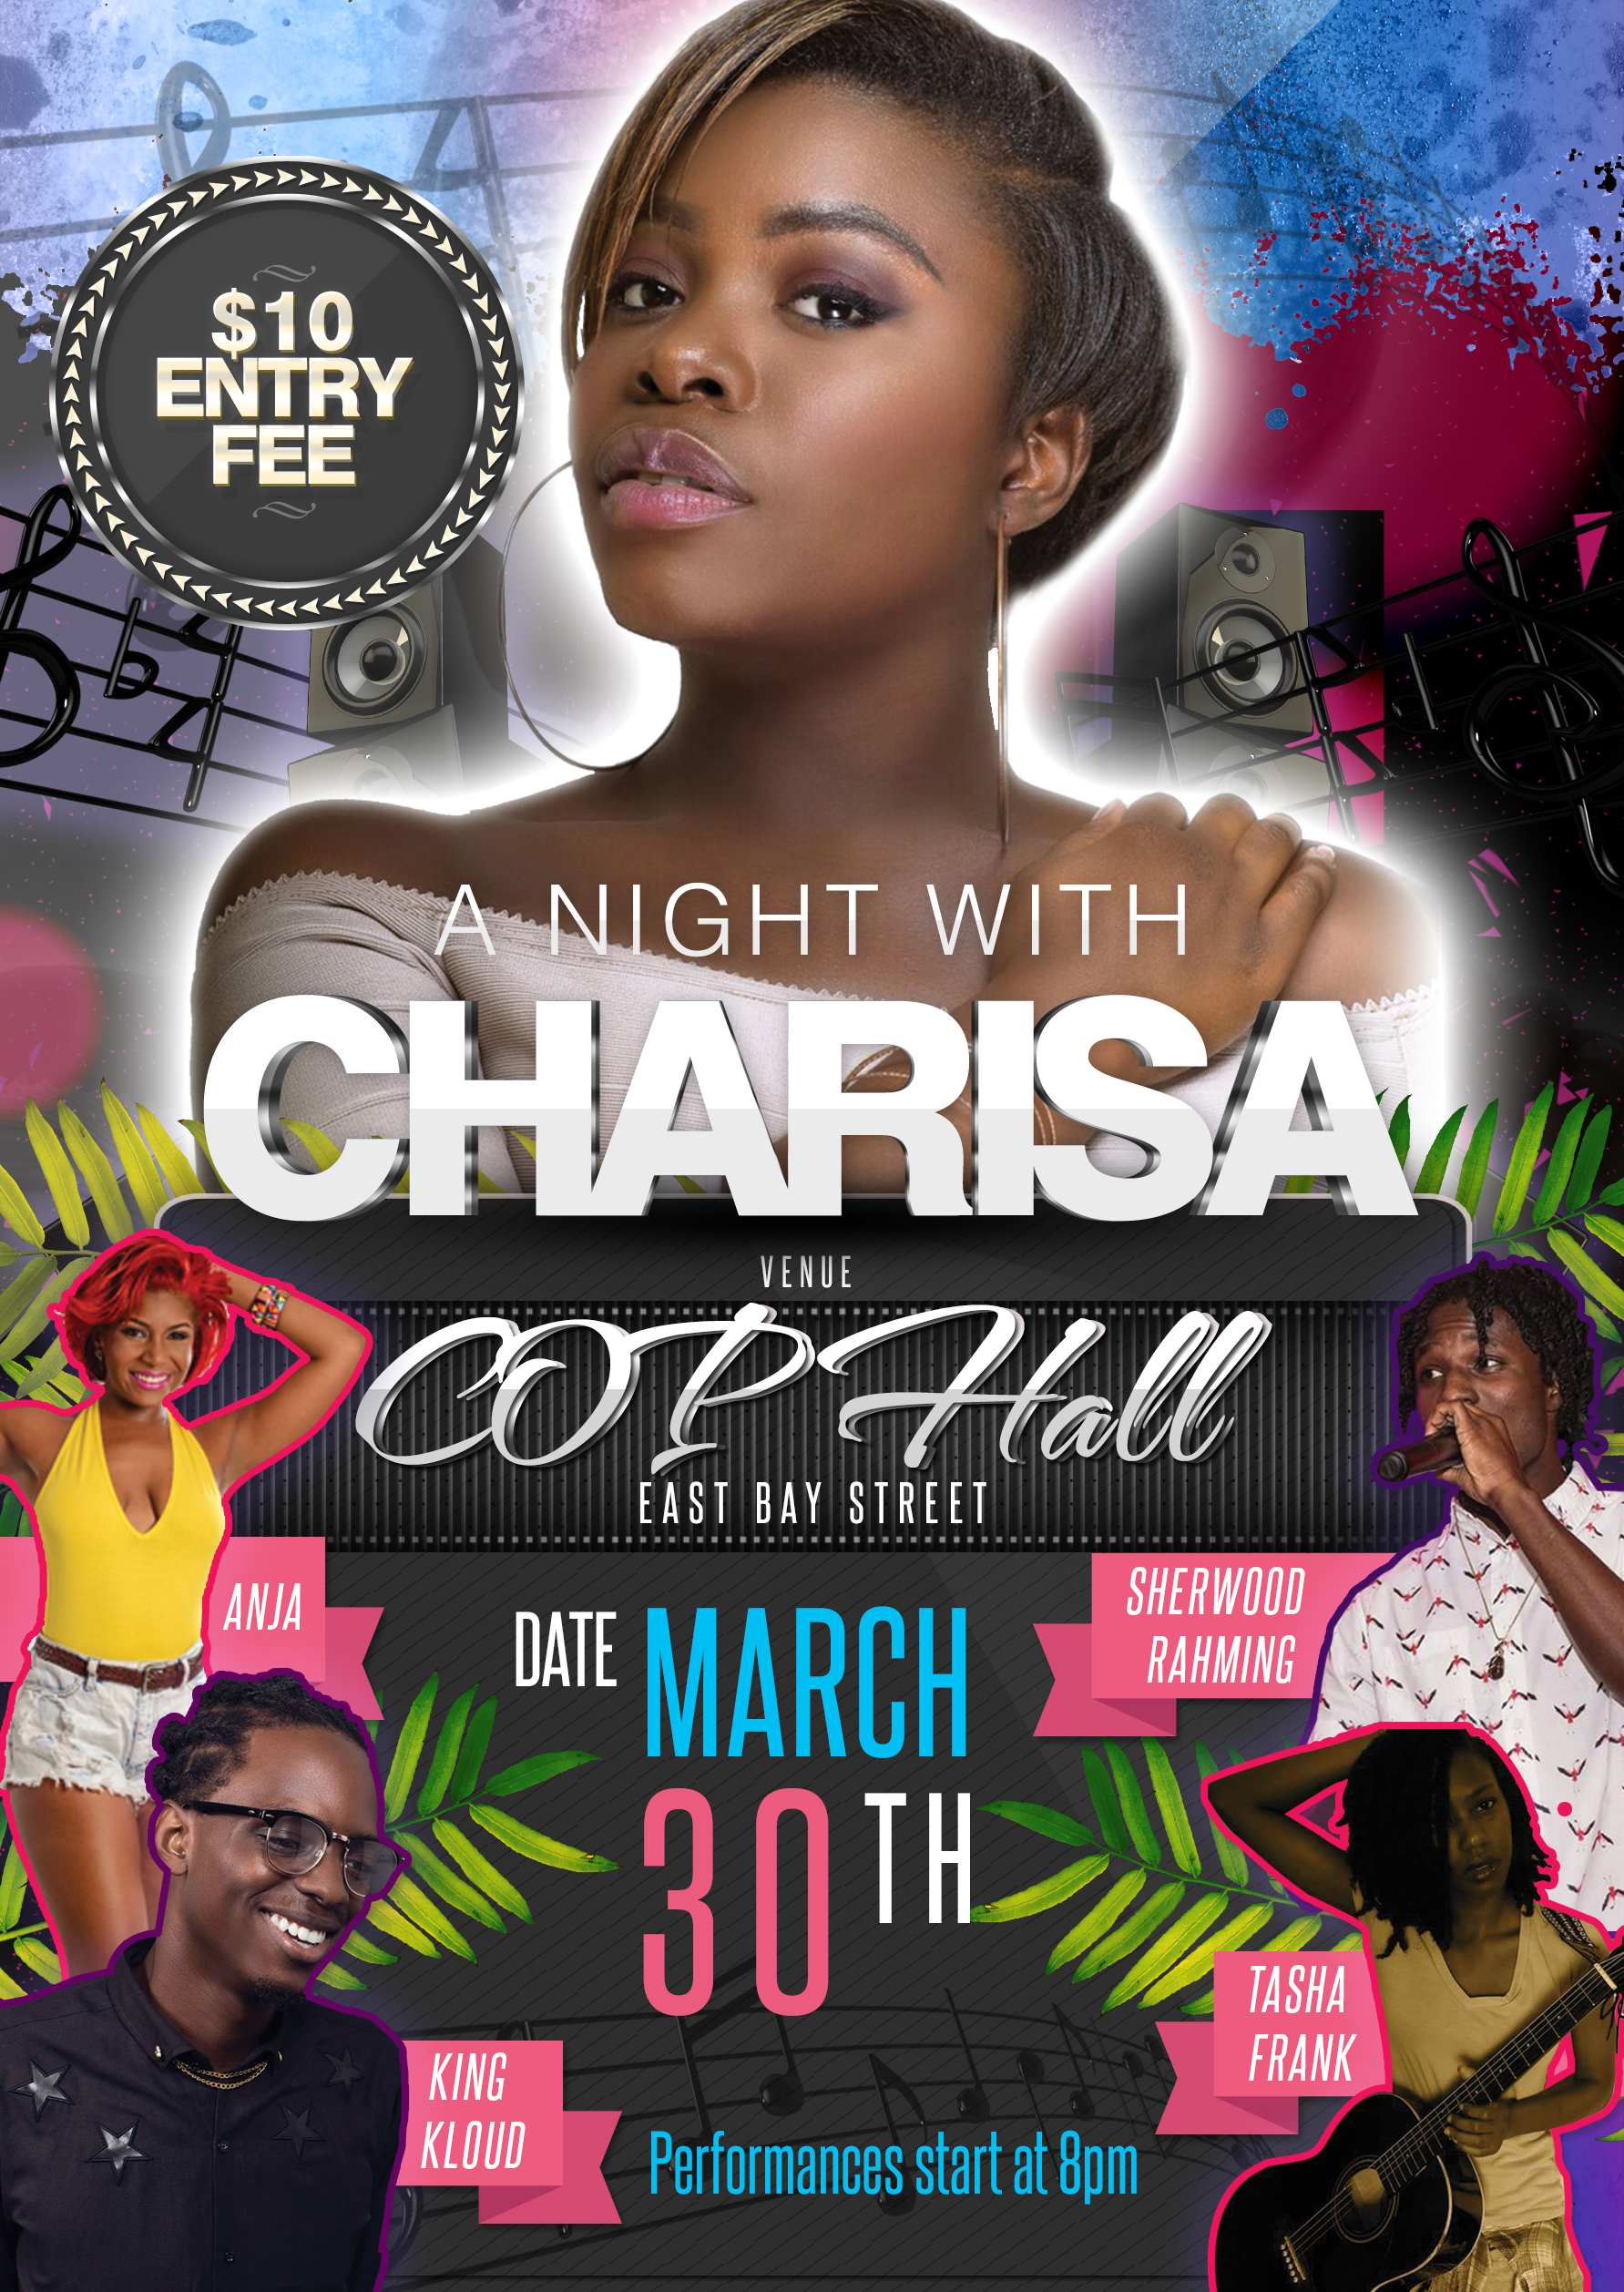 A Night With Charisa Flyer